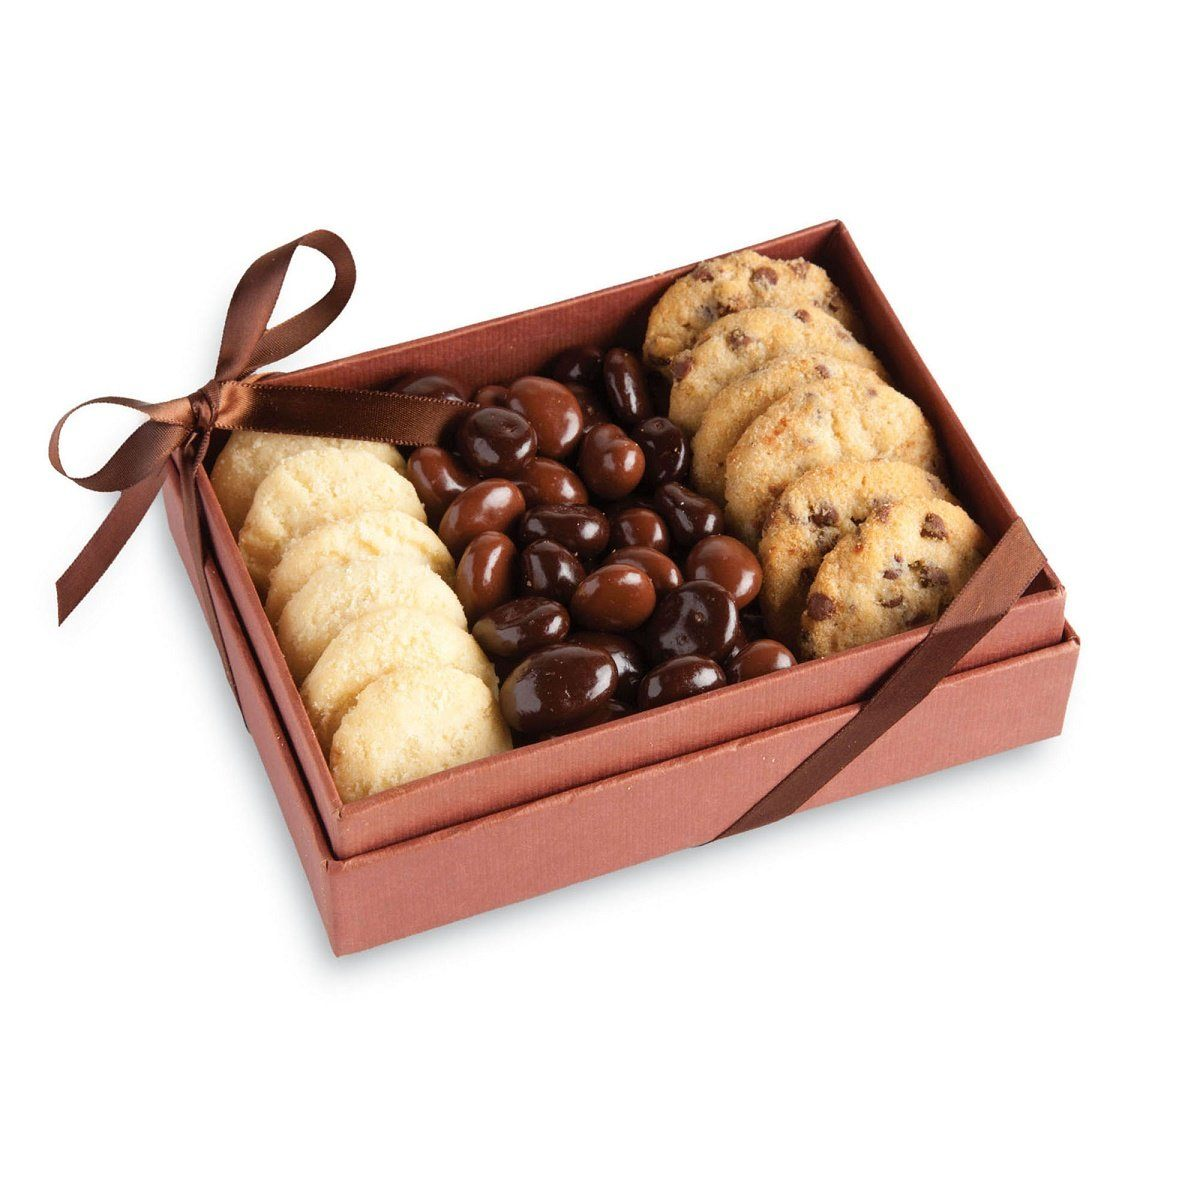 Cookies & Chocolate in elegant wood box filled with freshly baked Chocolate Chip Cookies, Butter Shortbread Cookies, and Milk & Dark Chocolate Covered Raisins